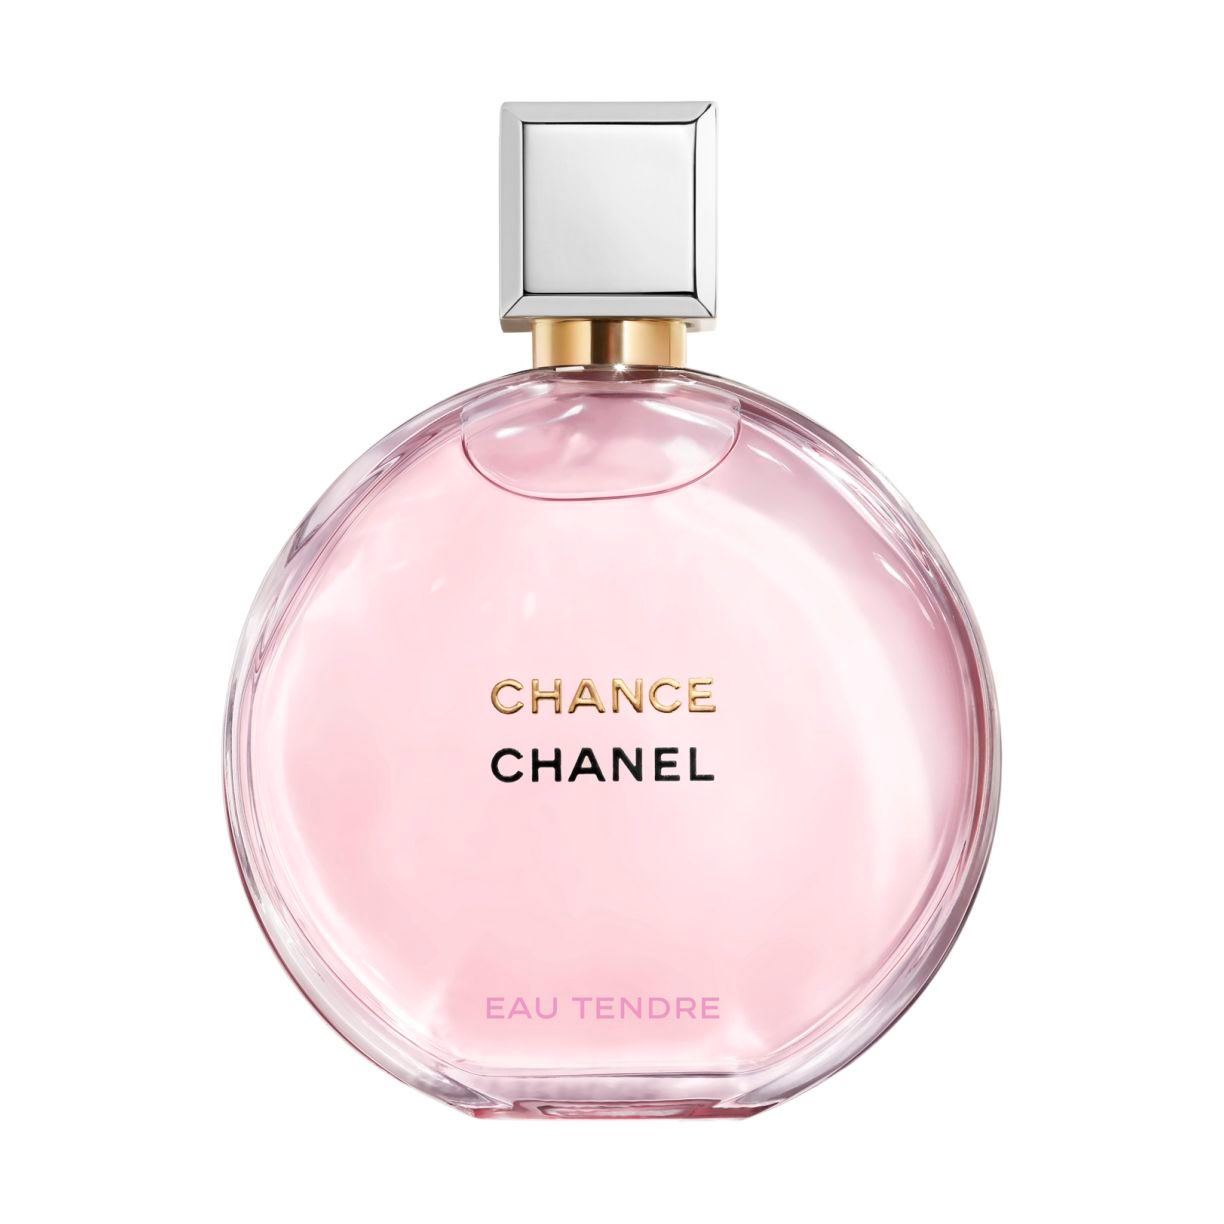 CHANCE EAU TENDRE EAU DE PARFUM SPRAY 100ml